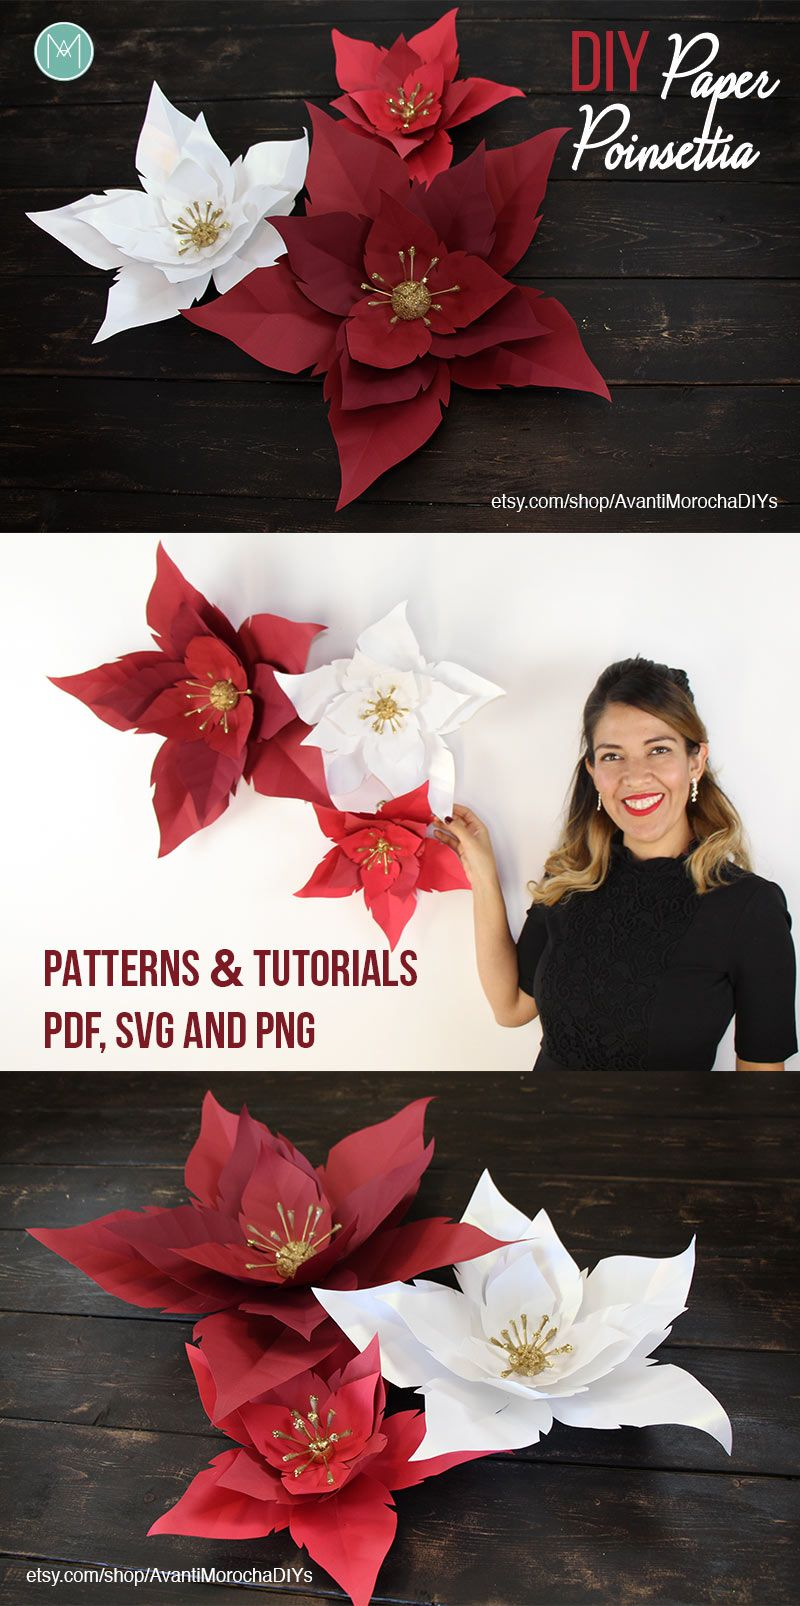 Diy Paper Poinsettia Christmas Holiday Decor Paper Flowers